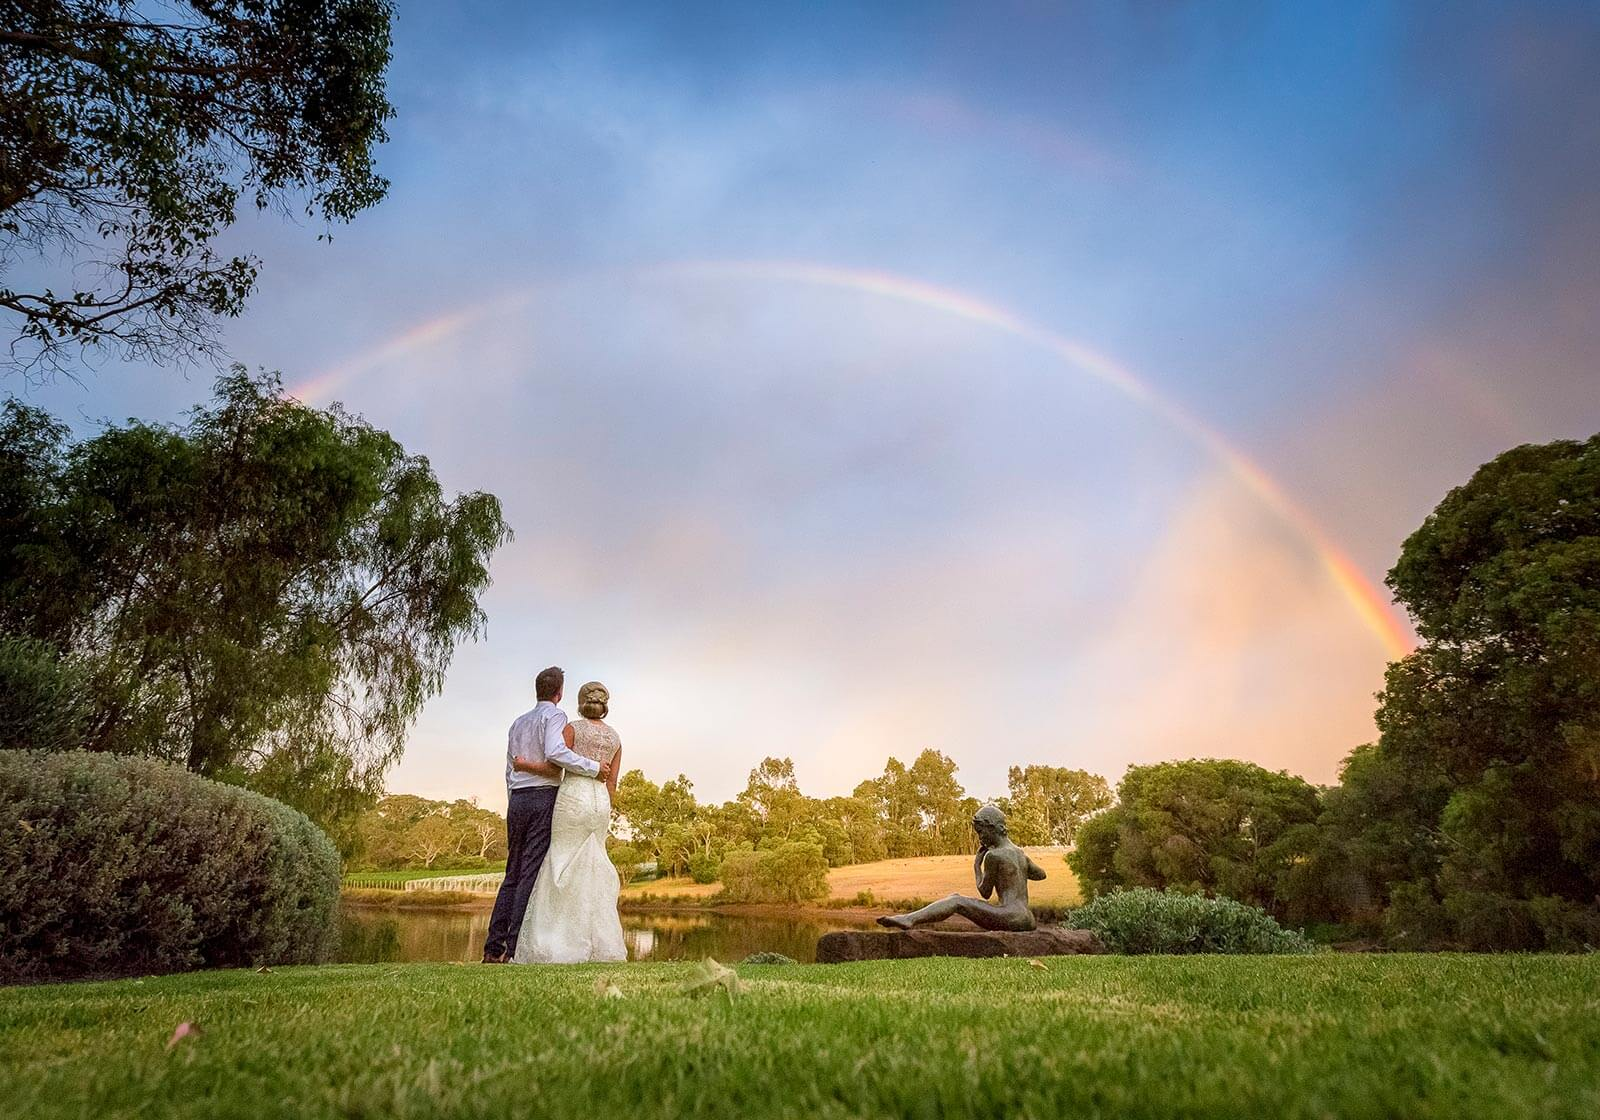 Flutes Restaurant Brookland Valley, Margaret River Wedding Photography by Peter Adams-Shawn